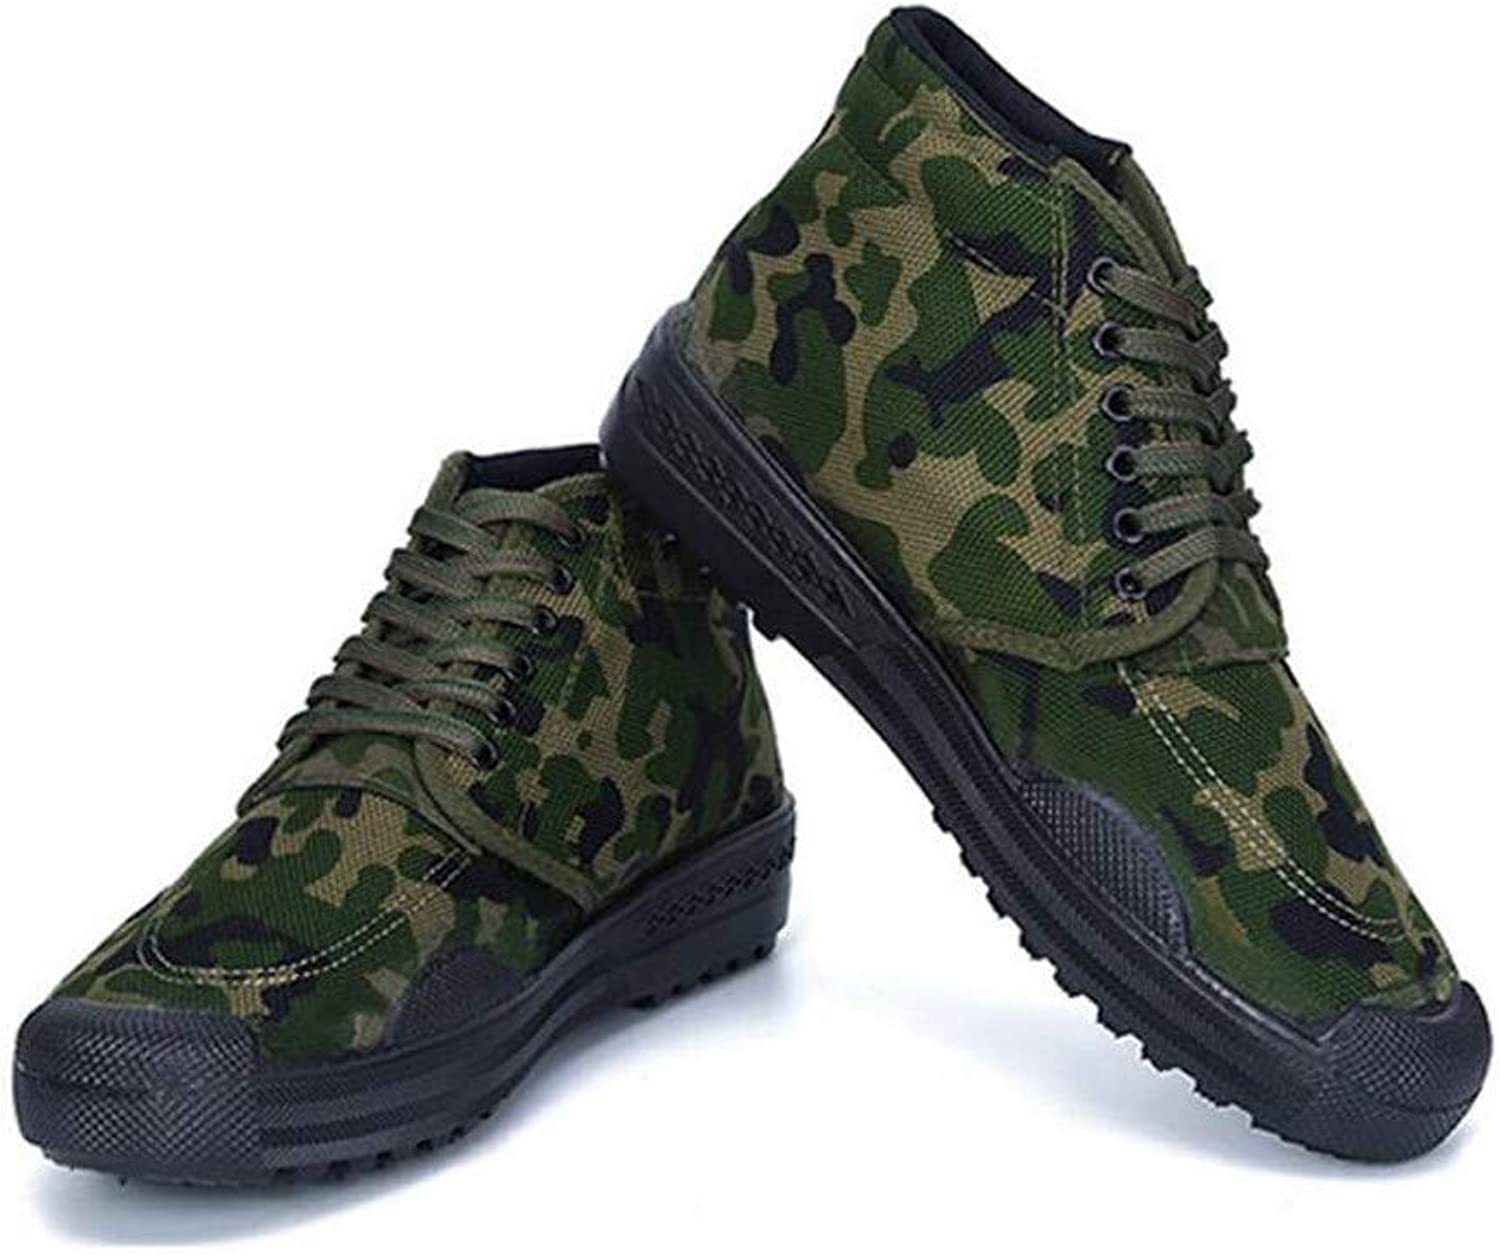 RcnryHigh wear wear resistant camouflage mountaineering outdoor shoes, canvas farm work site rubber shoes,c,42